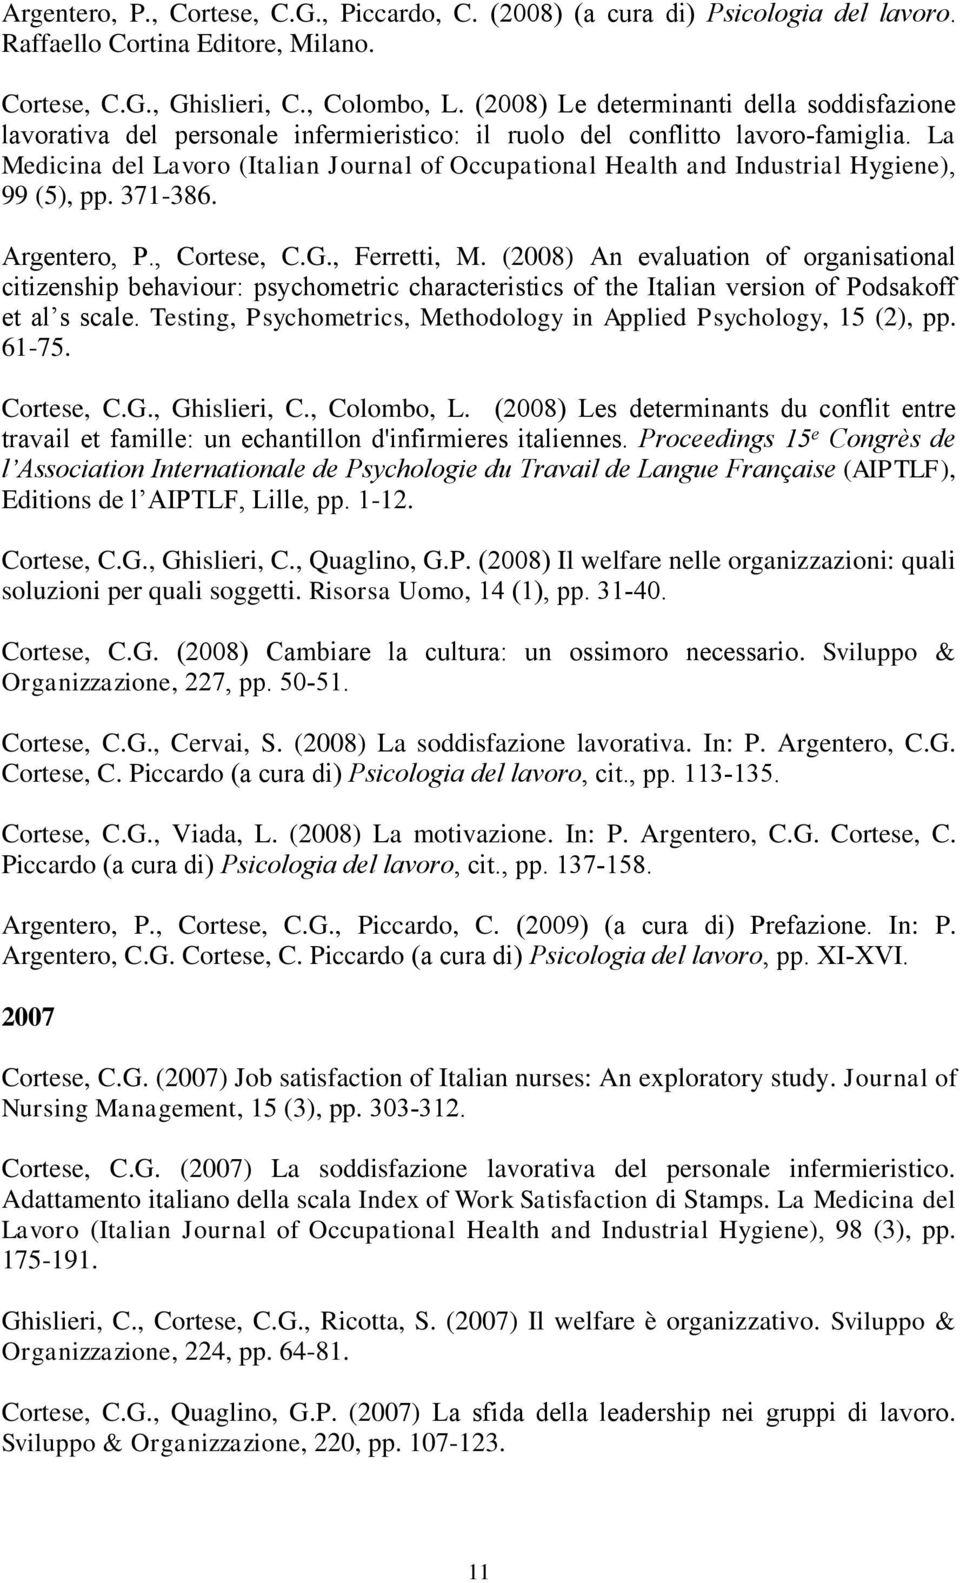 La Medicina del Lavoro (Italian Journal of Occupational Health and Industrial Hygiene), 99 (5), pp. 371-386. Argentero, P., Cortese, C.G., Ferretti, M.